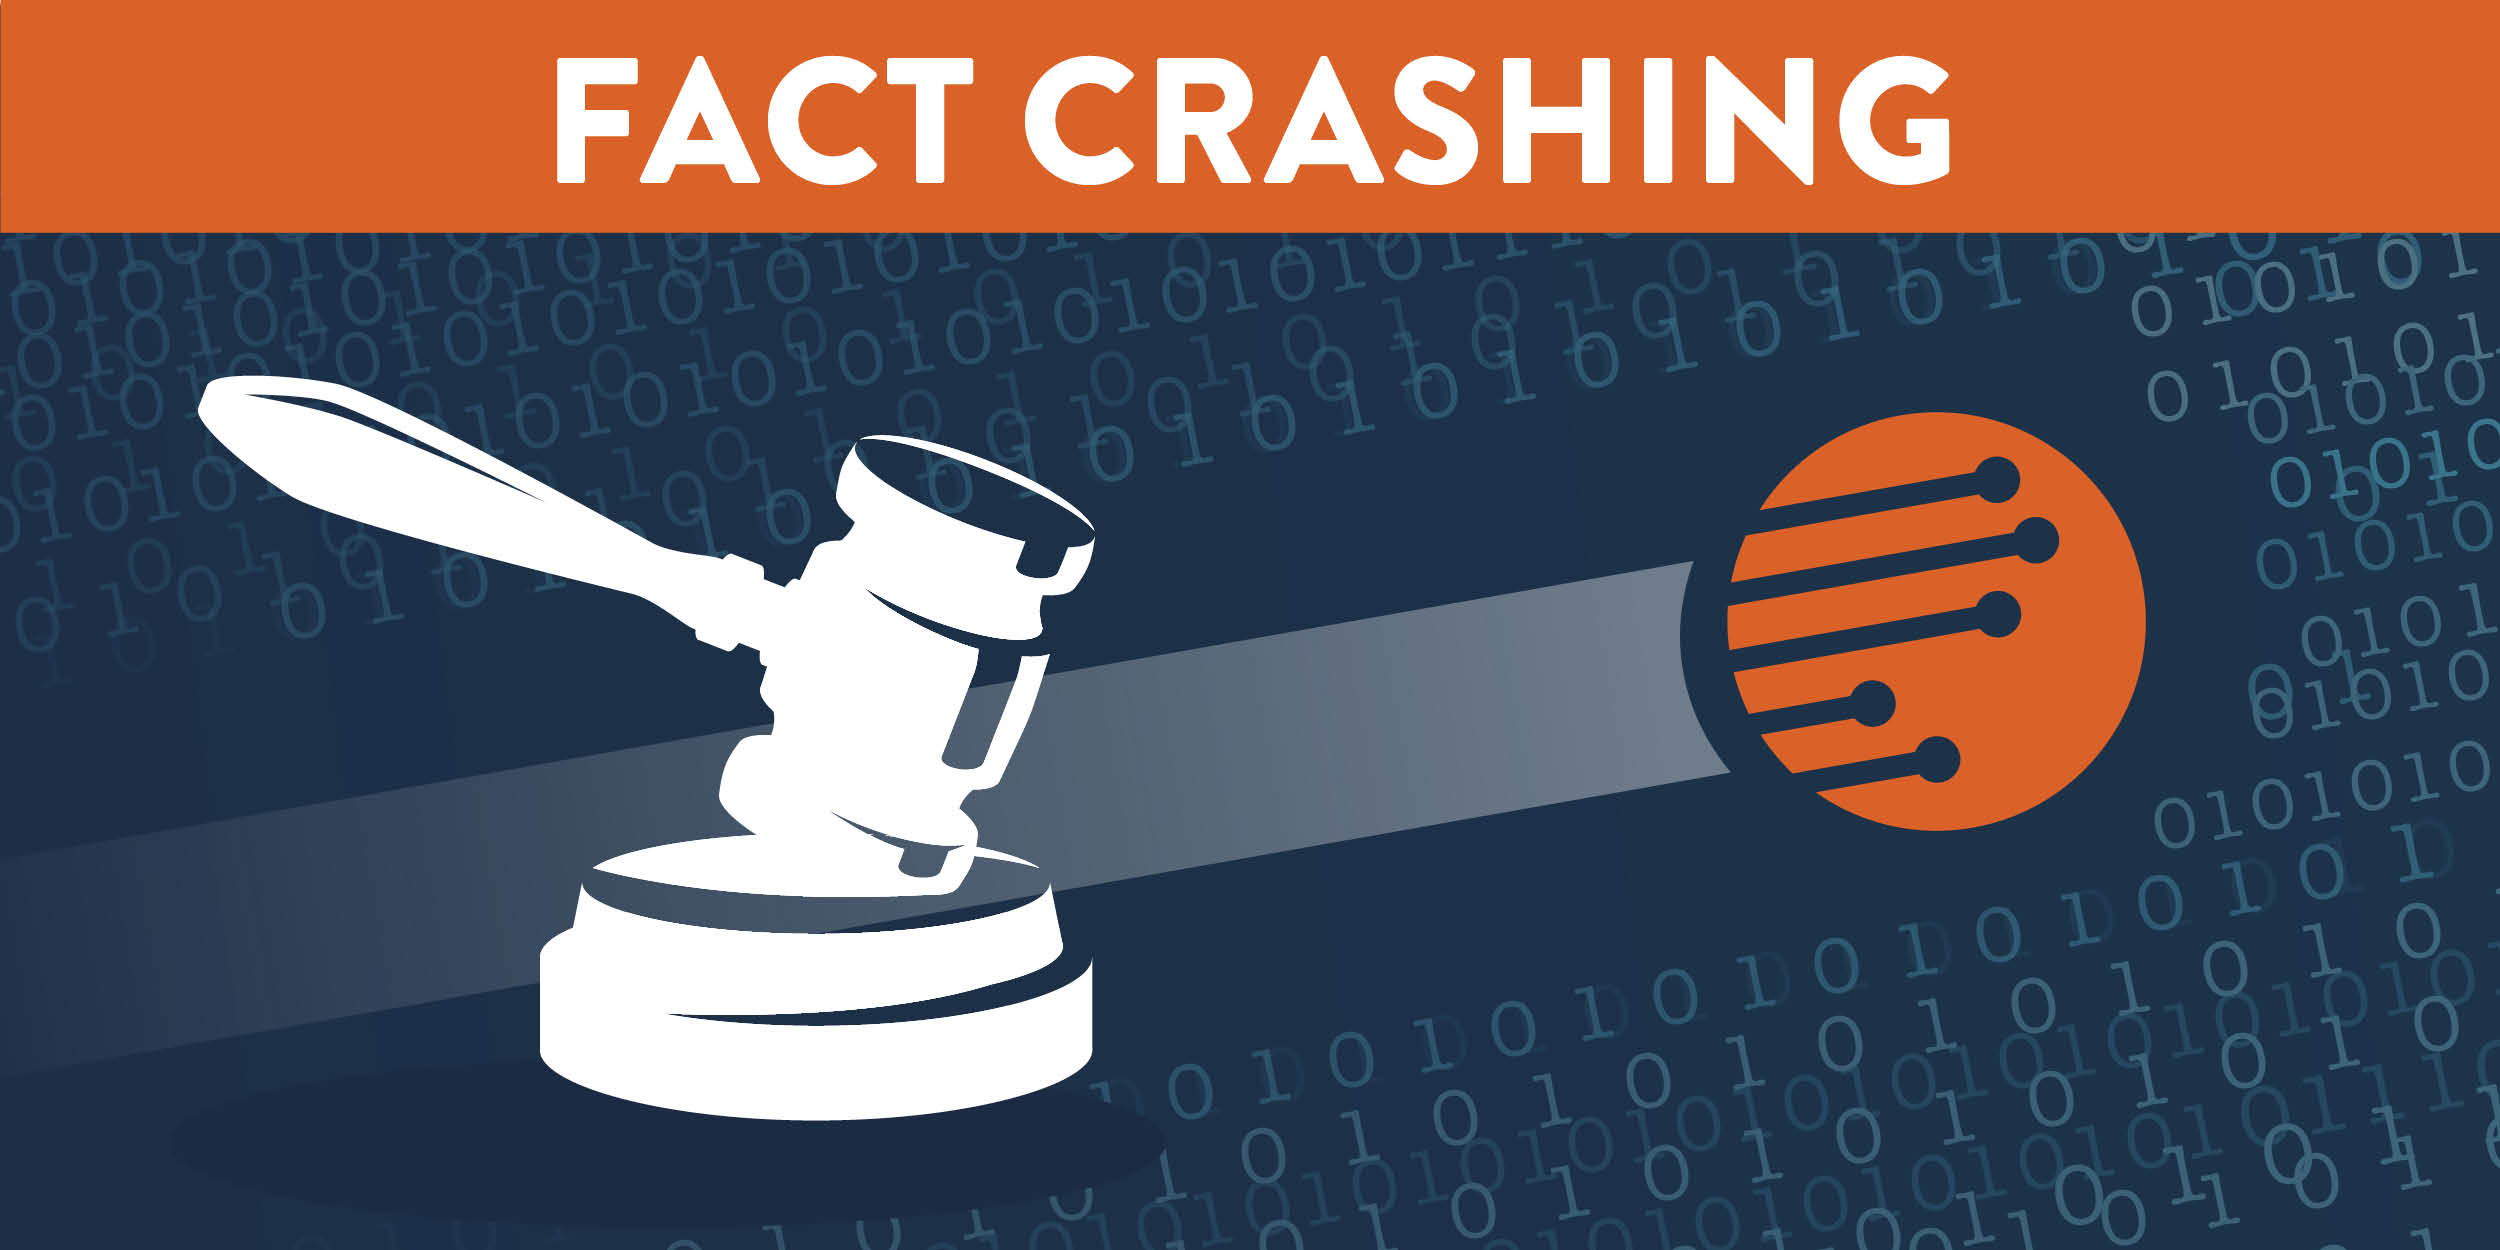 Fact Crashing™, Fact Crashing, Action Data, Discovery, iDiscovery Solutions, data-centric inquires, data centric inquires, Dan Regard iDiscovery Solutions, Dan Regard, Data, frame case issues as data-centric inquiries